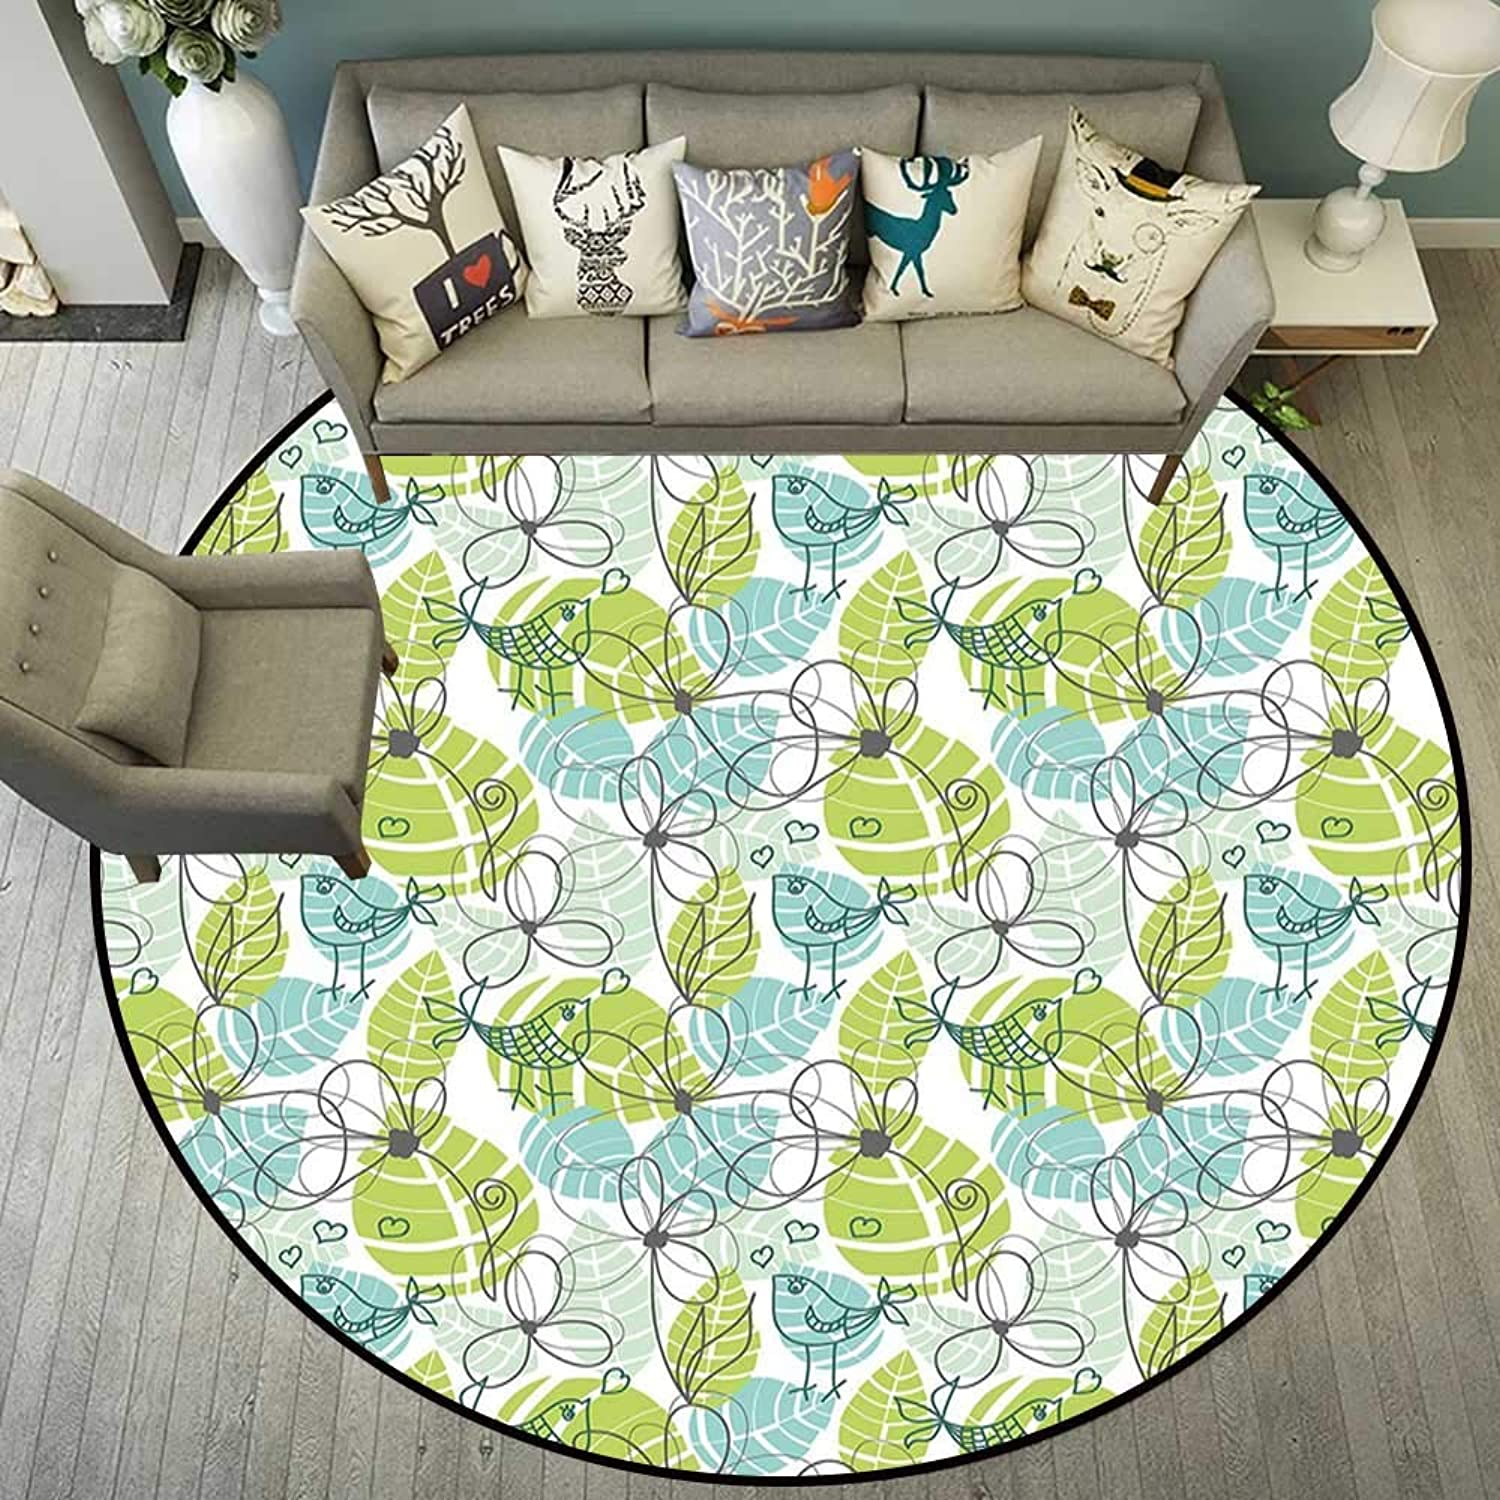 Circle Floor mat Beach Round Indoor Floor mat Entrance Circle Floor mat for Office Chair Wood Floor Circle Floor mat Office Round mat for Living Room Pattern 5'3  Diameter